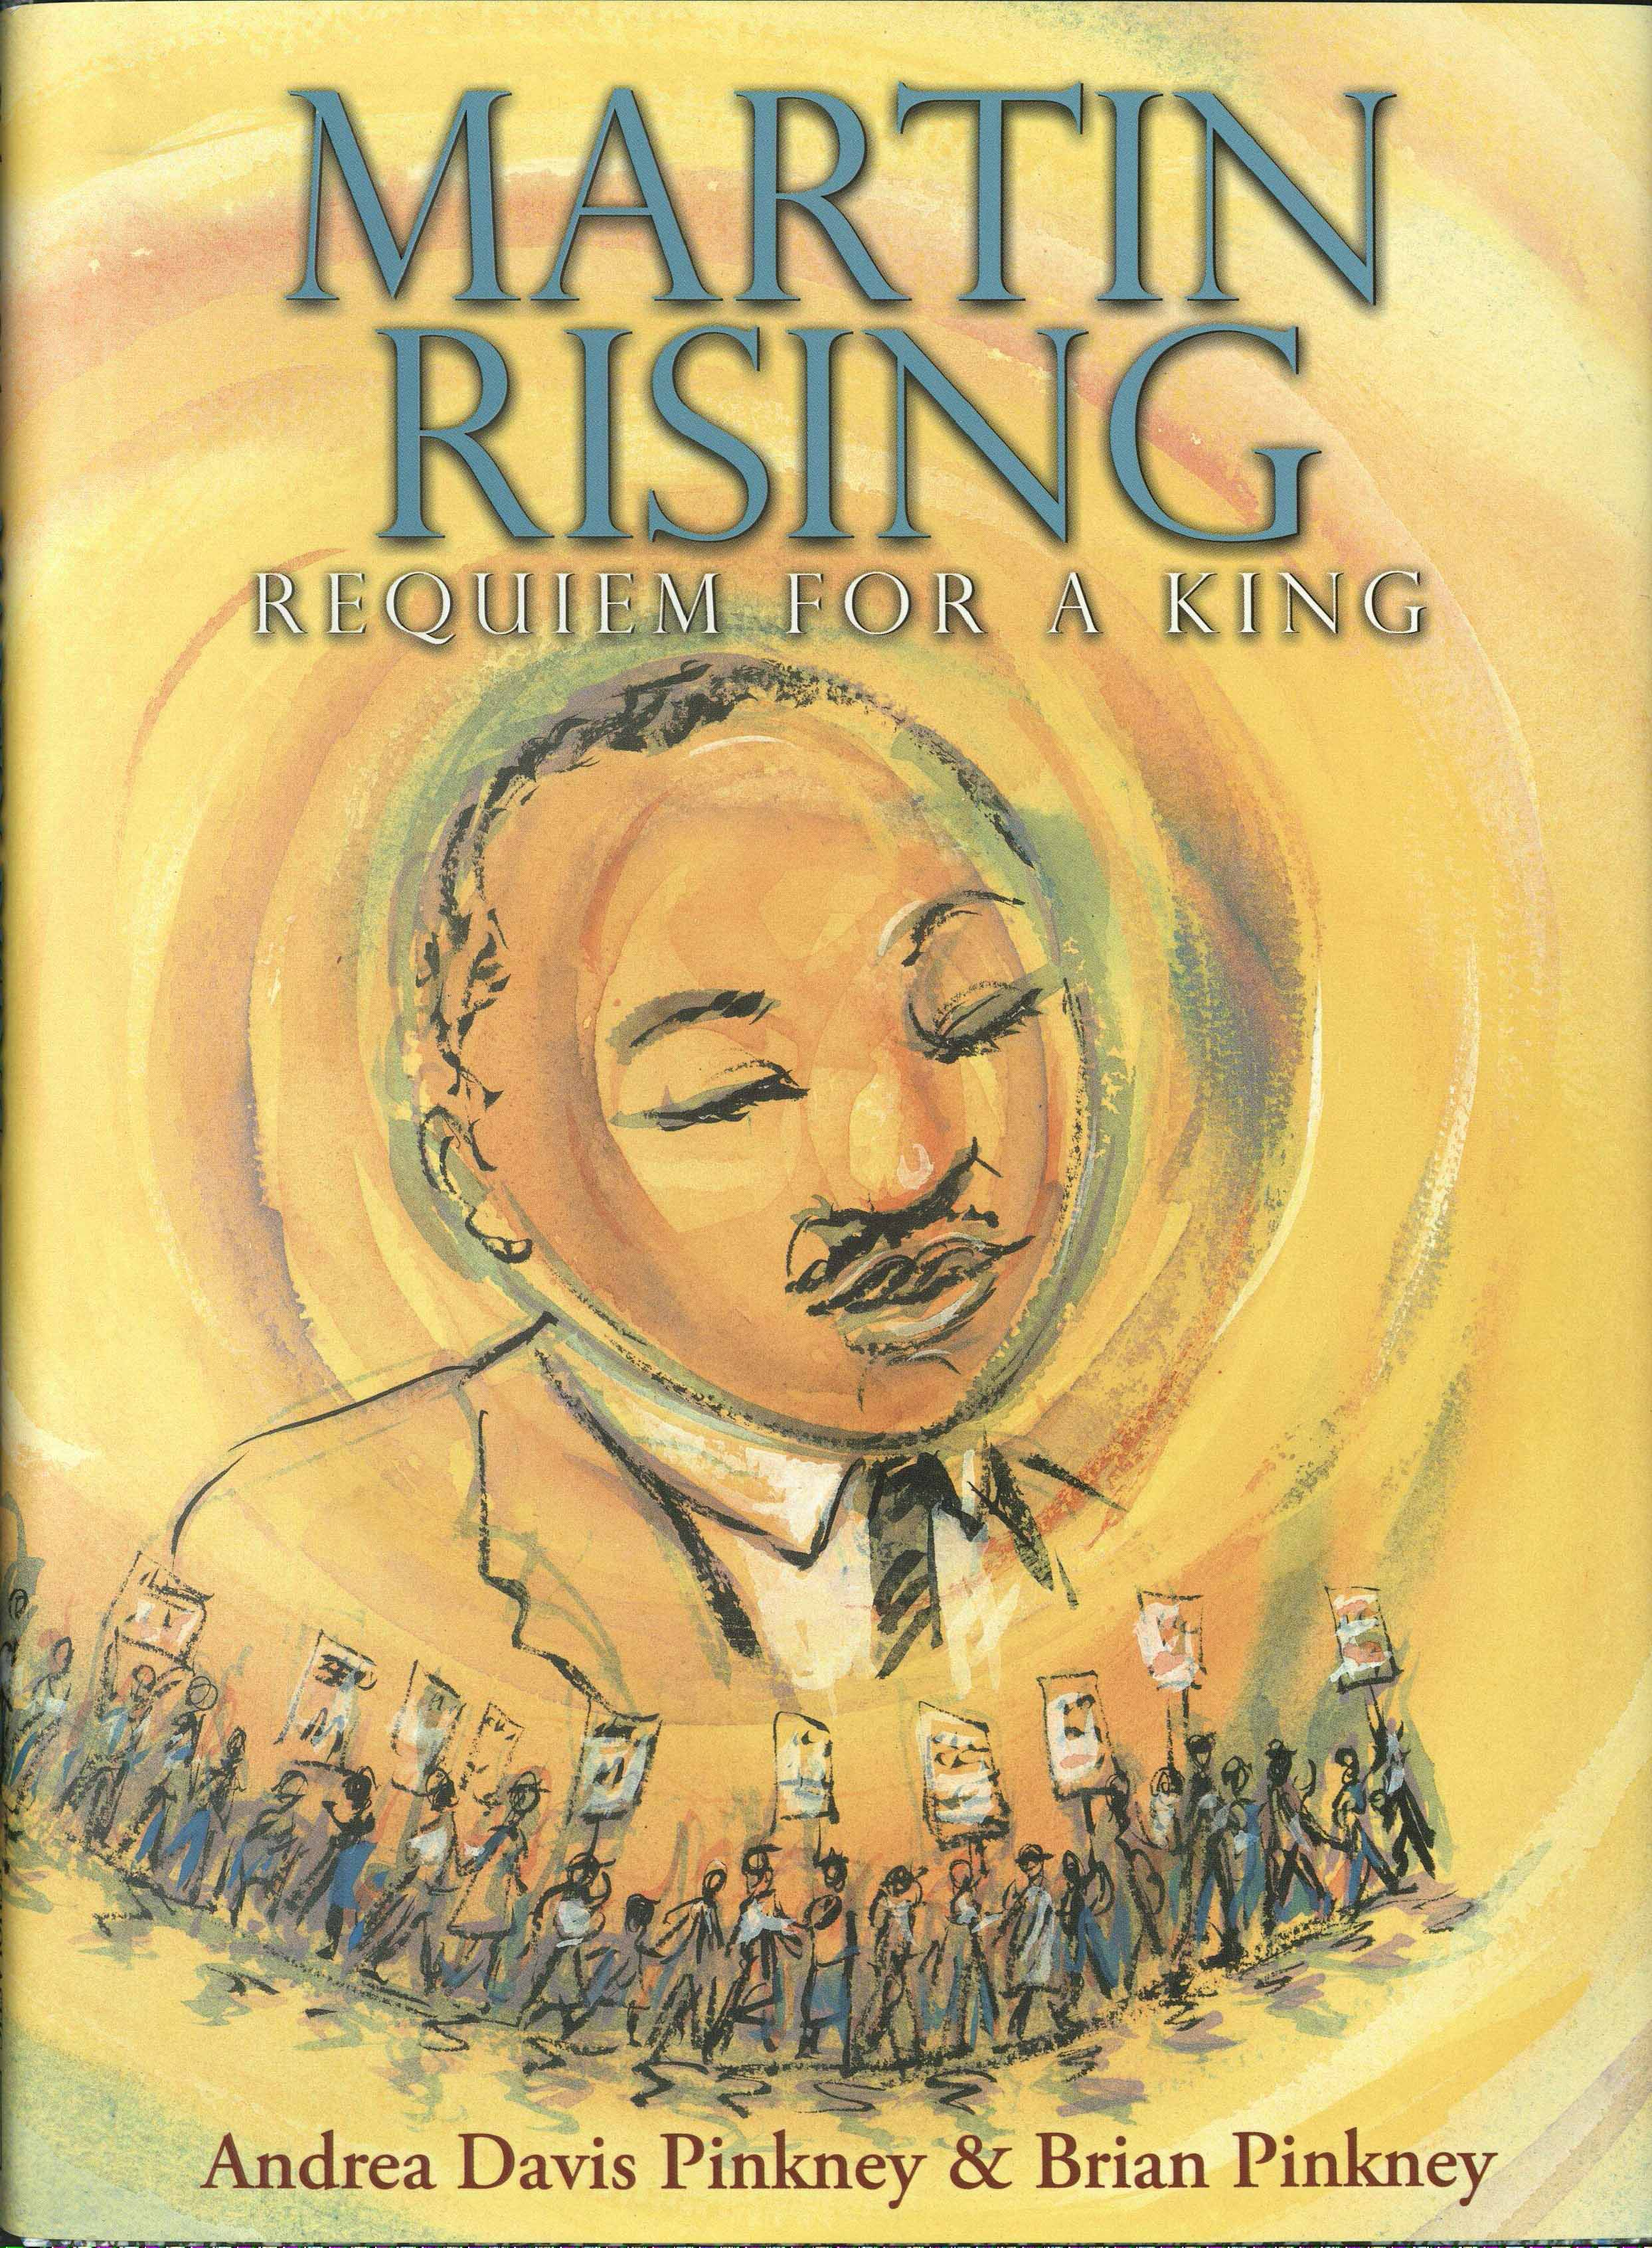 Cover of Martin Rising: Requiem for a King, by Andrea David Pinkney and Brian Pinkney